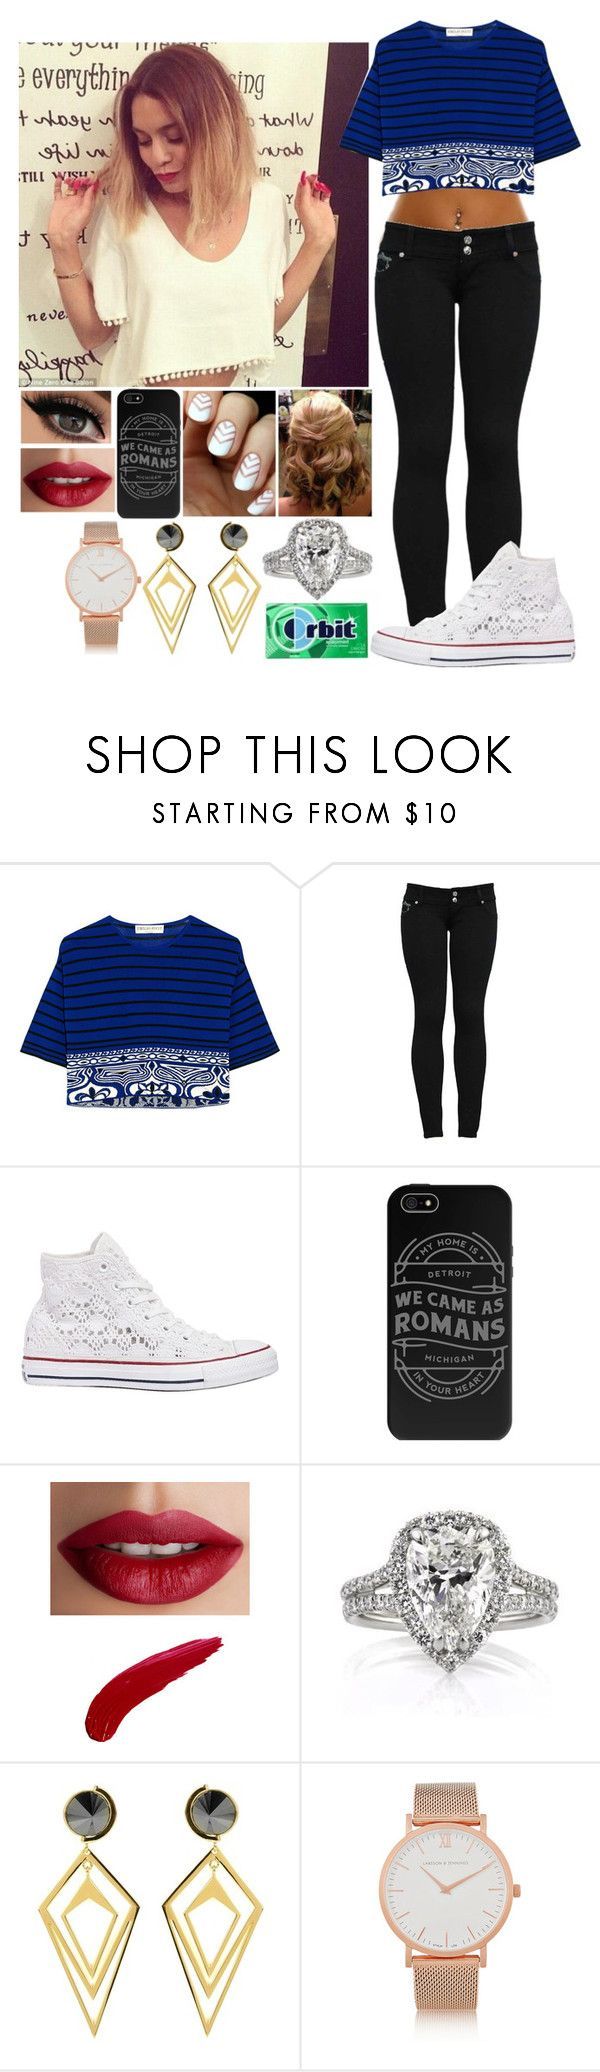 """""""OOTD -Jane"""" by loving-you-was-wrong ❤ liked on Polyvore featuring Emilio Pucci, Converse, TheBalm, Sarah Magid and Larsson & Jennings"""